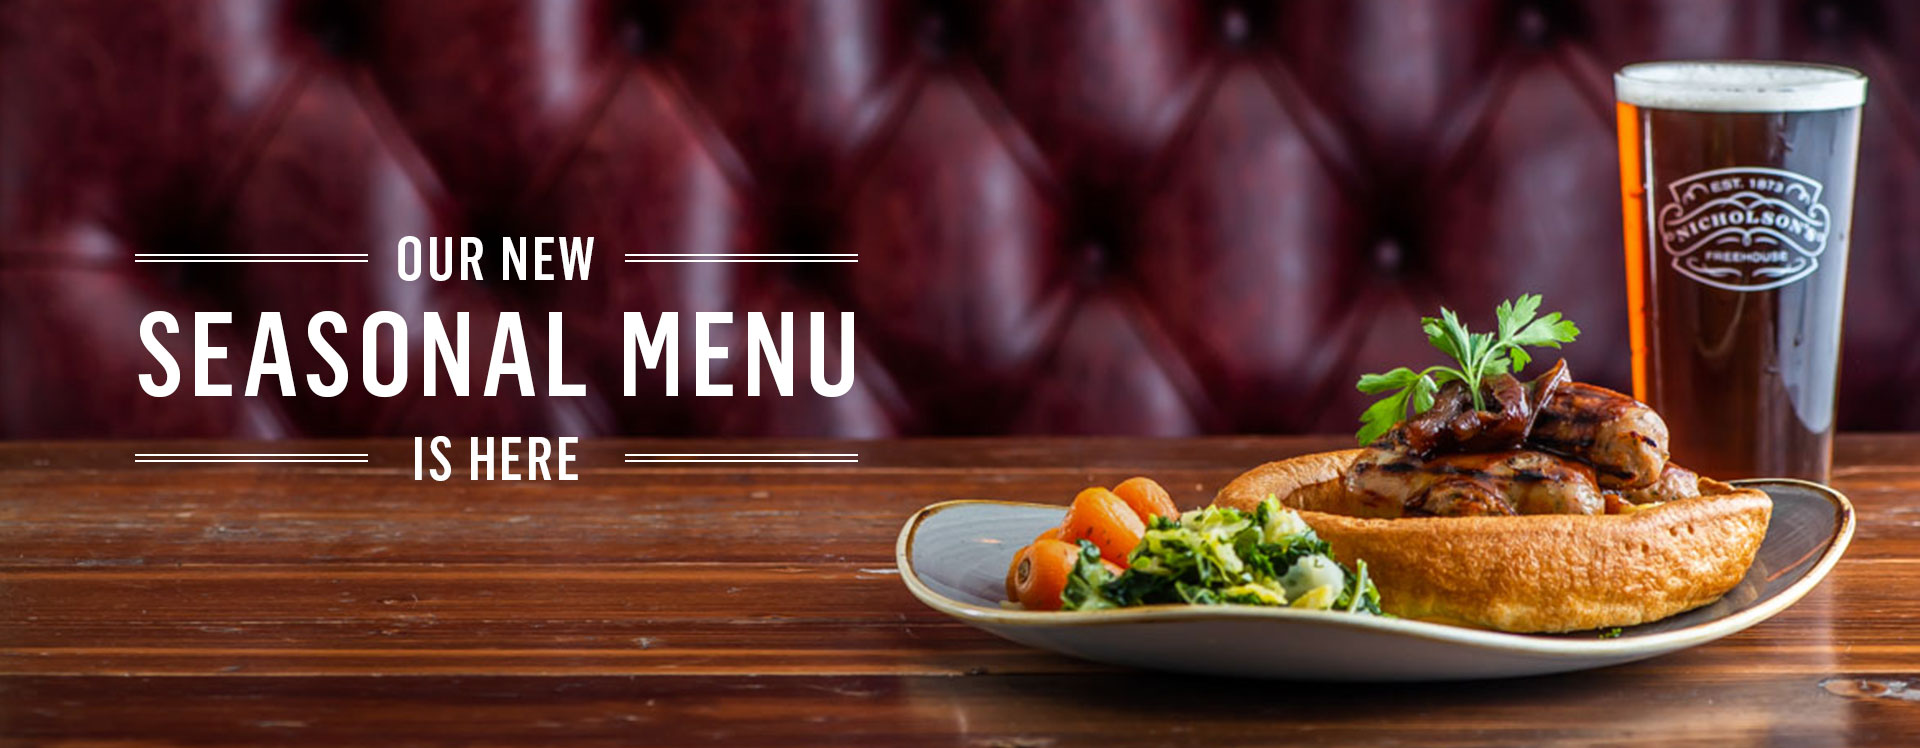 New Menu at The Chequers